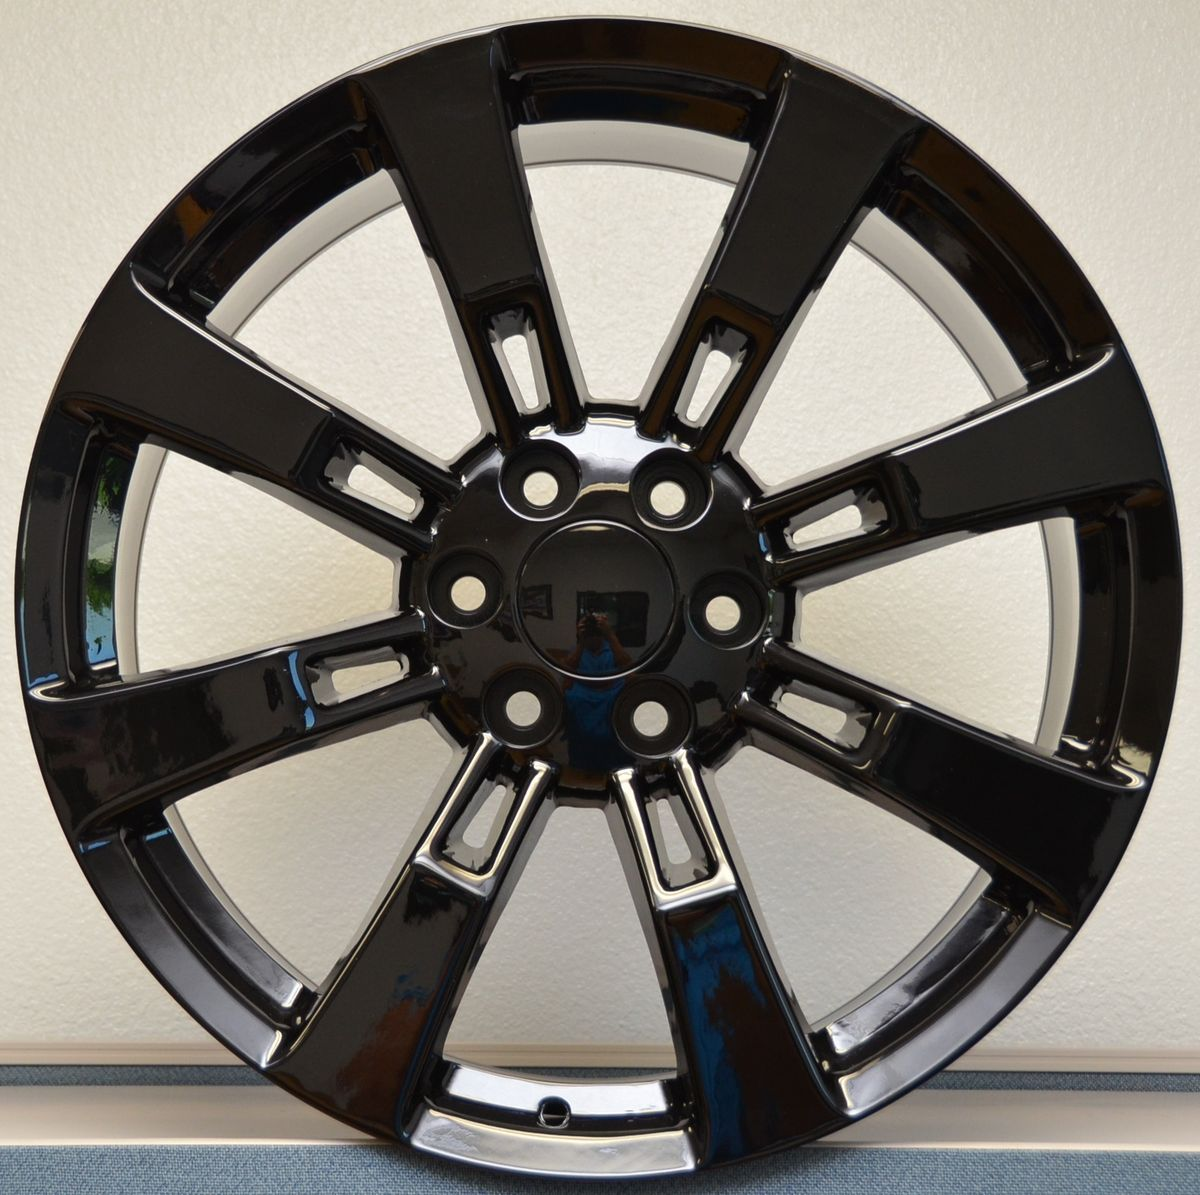 Denali Escalade Sierra Yukon Tahoe Wheels Rims Set Gloss Black